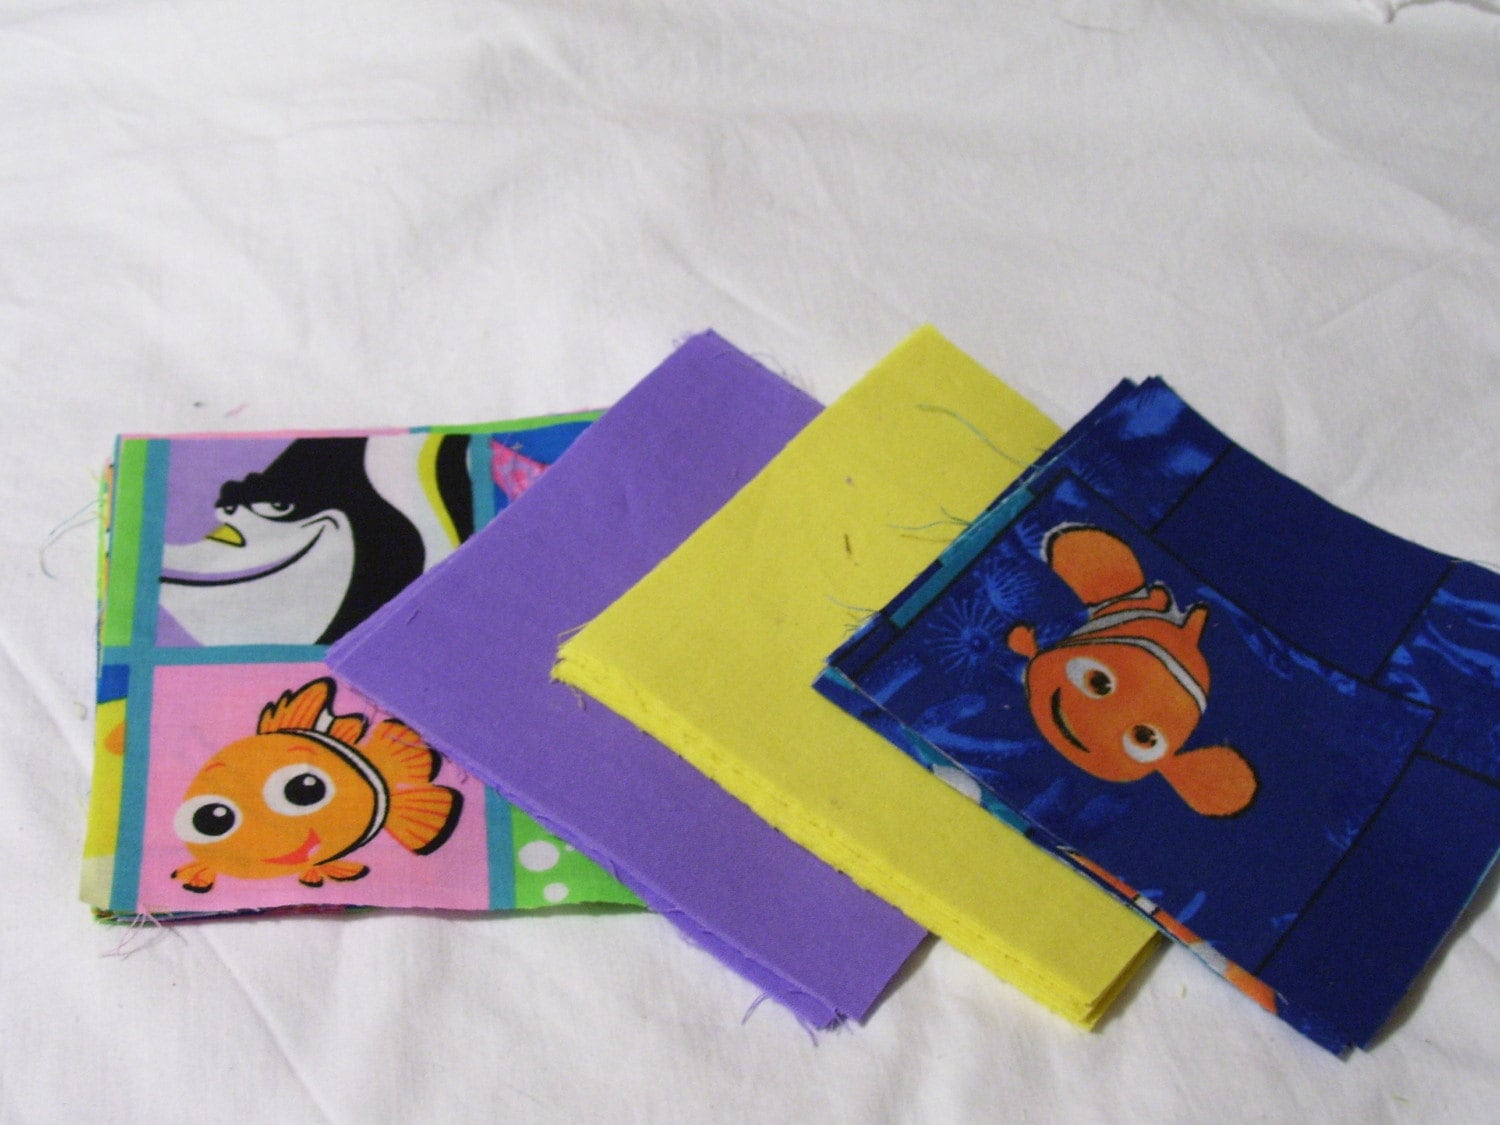 Finding Nemo Quilt Kit 5 Inch Squares By Fabriccrazy On Etsy